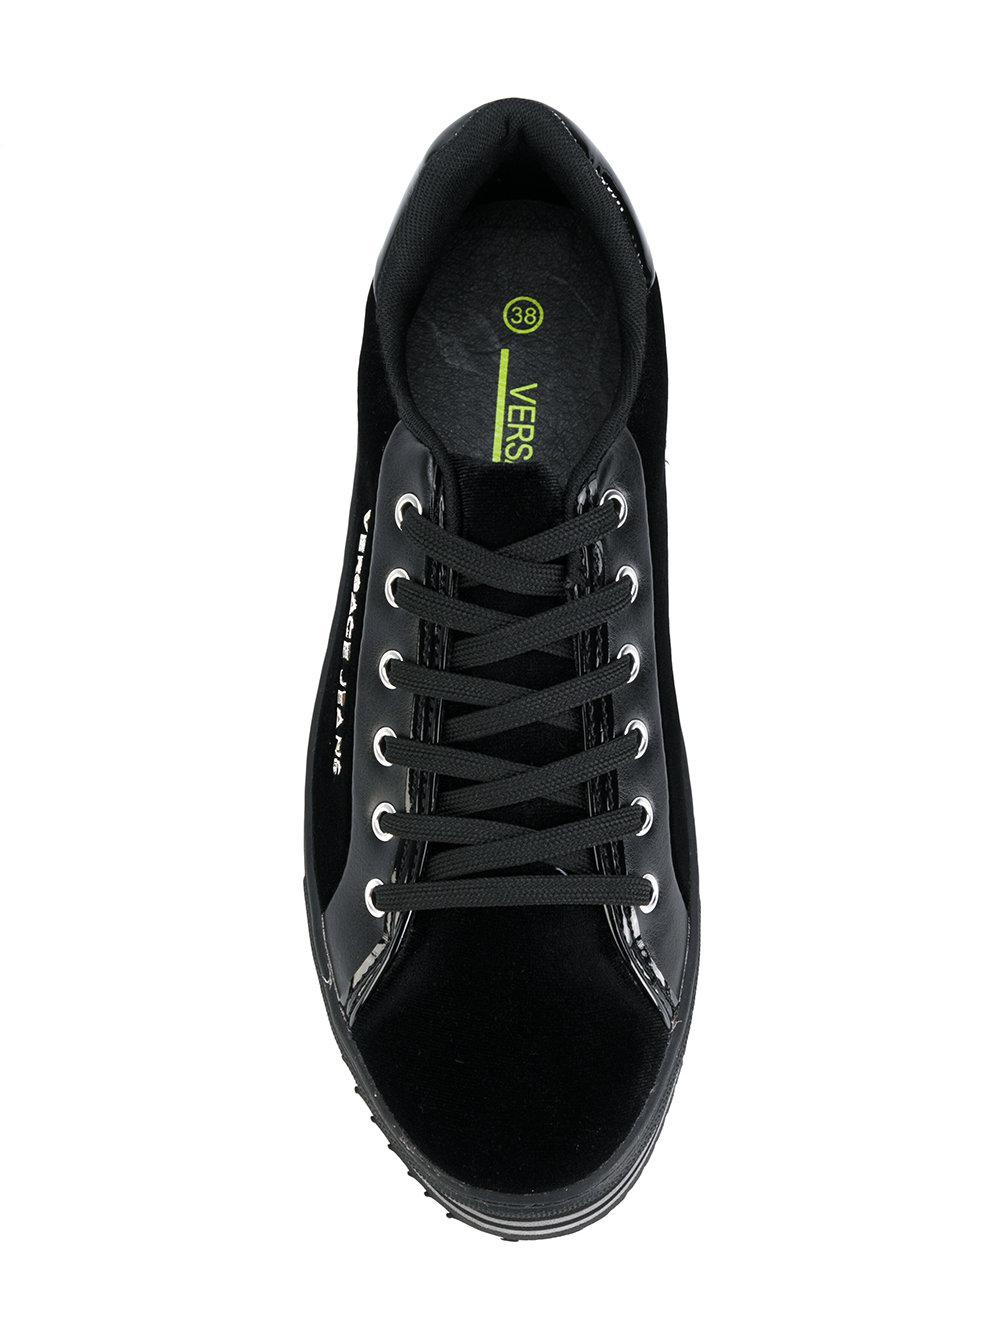 Versace Jeans Couture Cotton Platform Lace Up Sneakers in Black